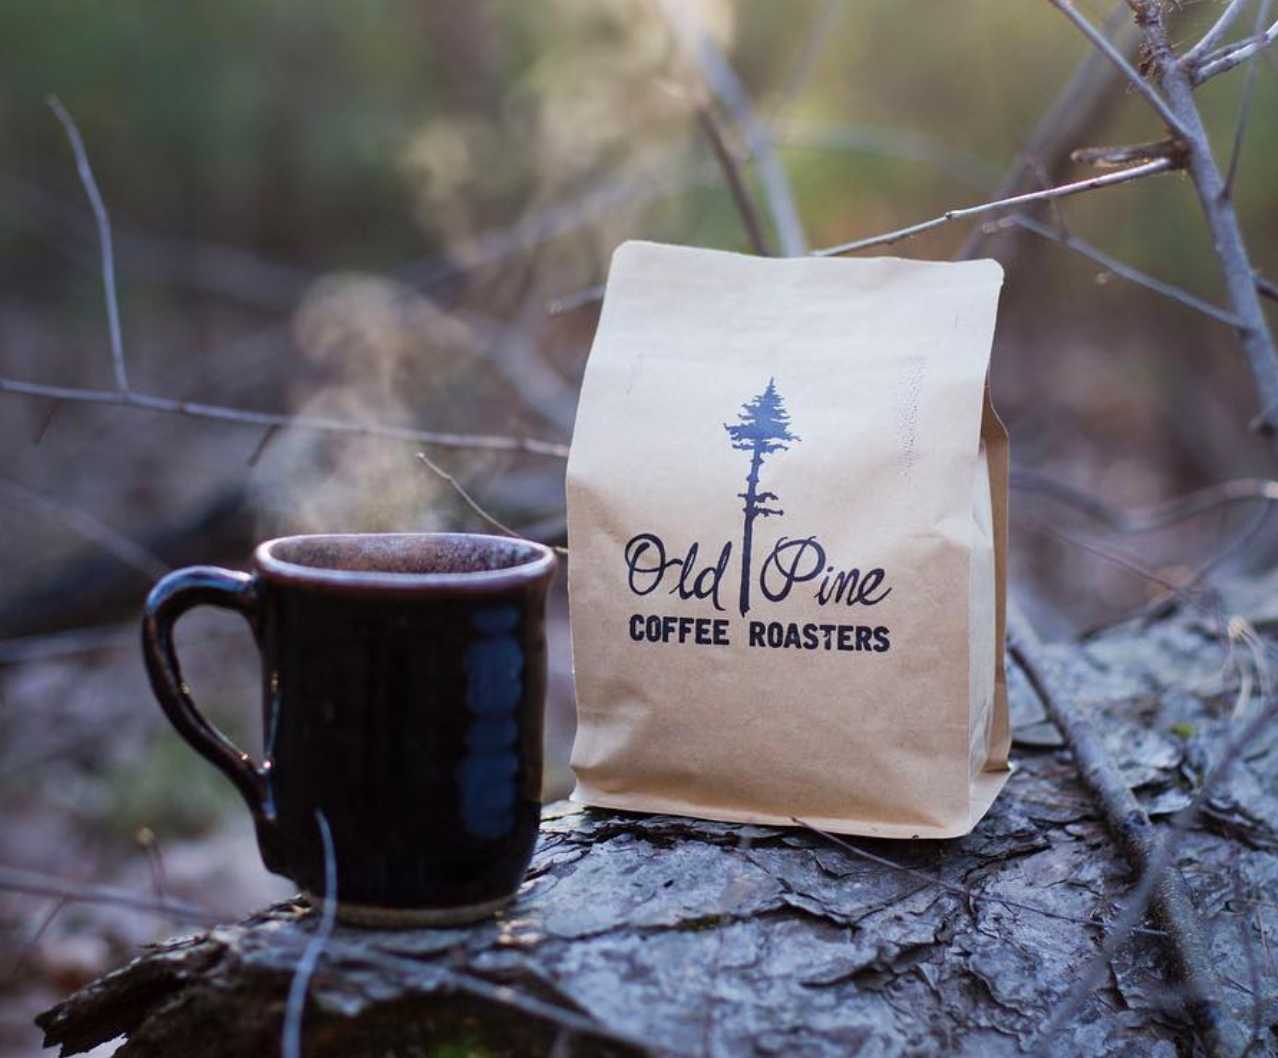 Old Pine Coffee Roasters